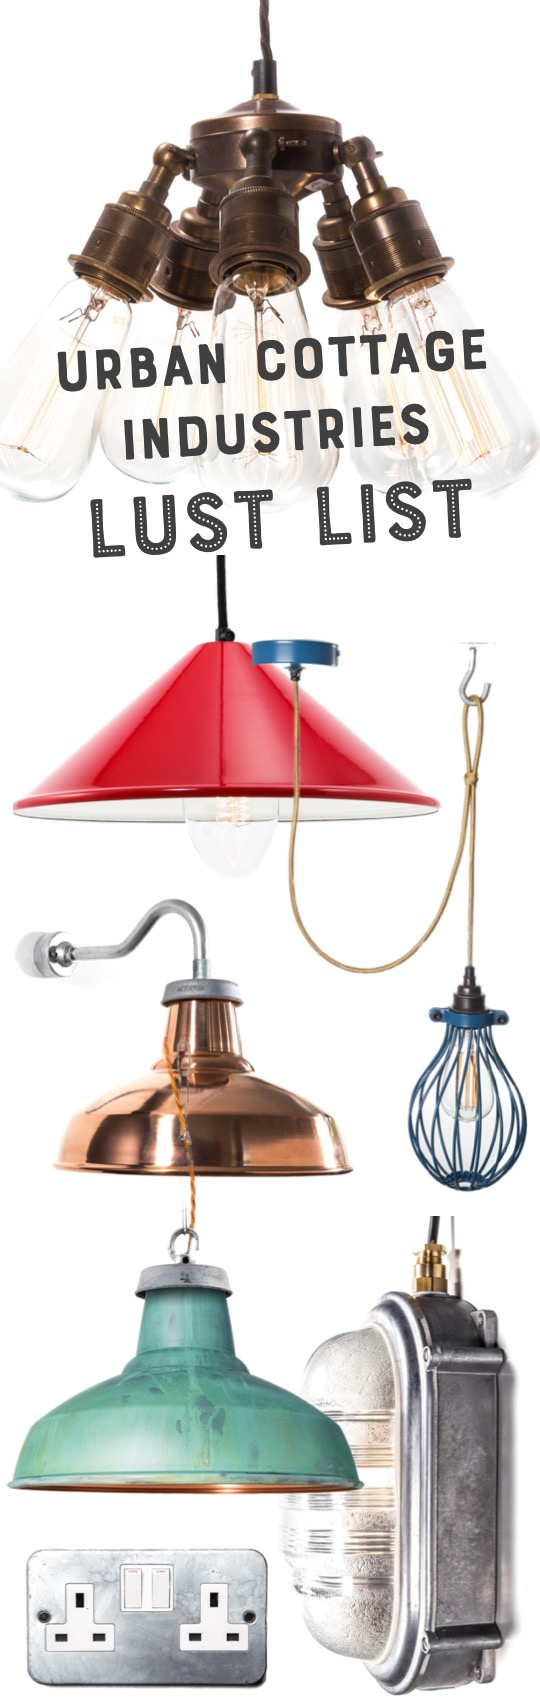 urban cottage industries industrial lighting shop review mood board